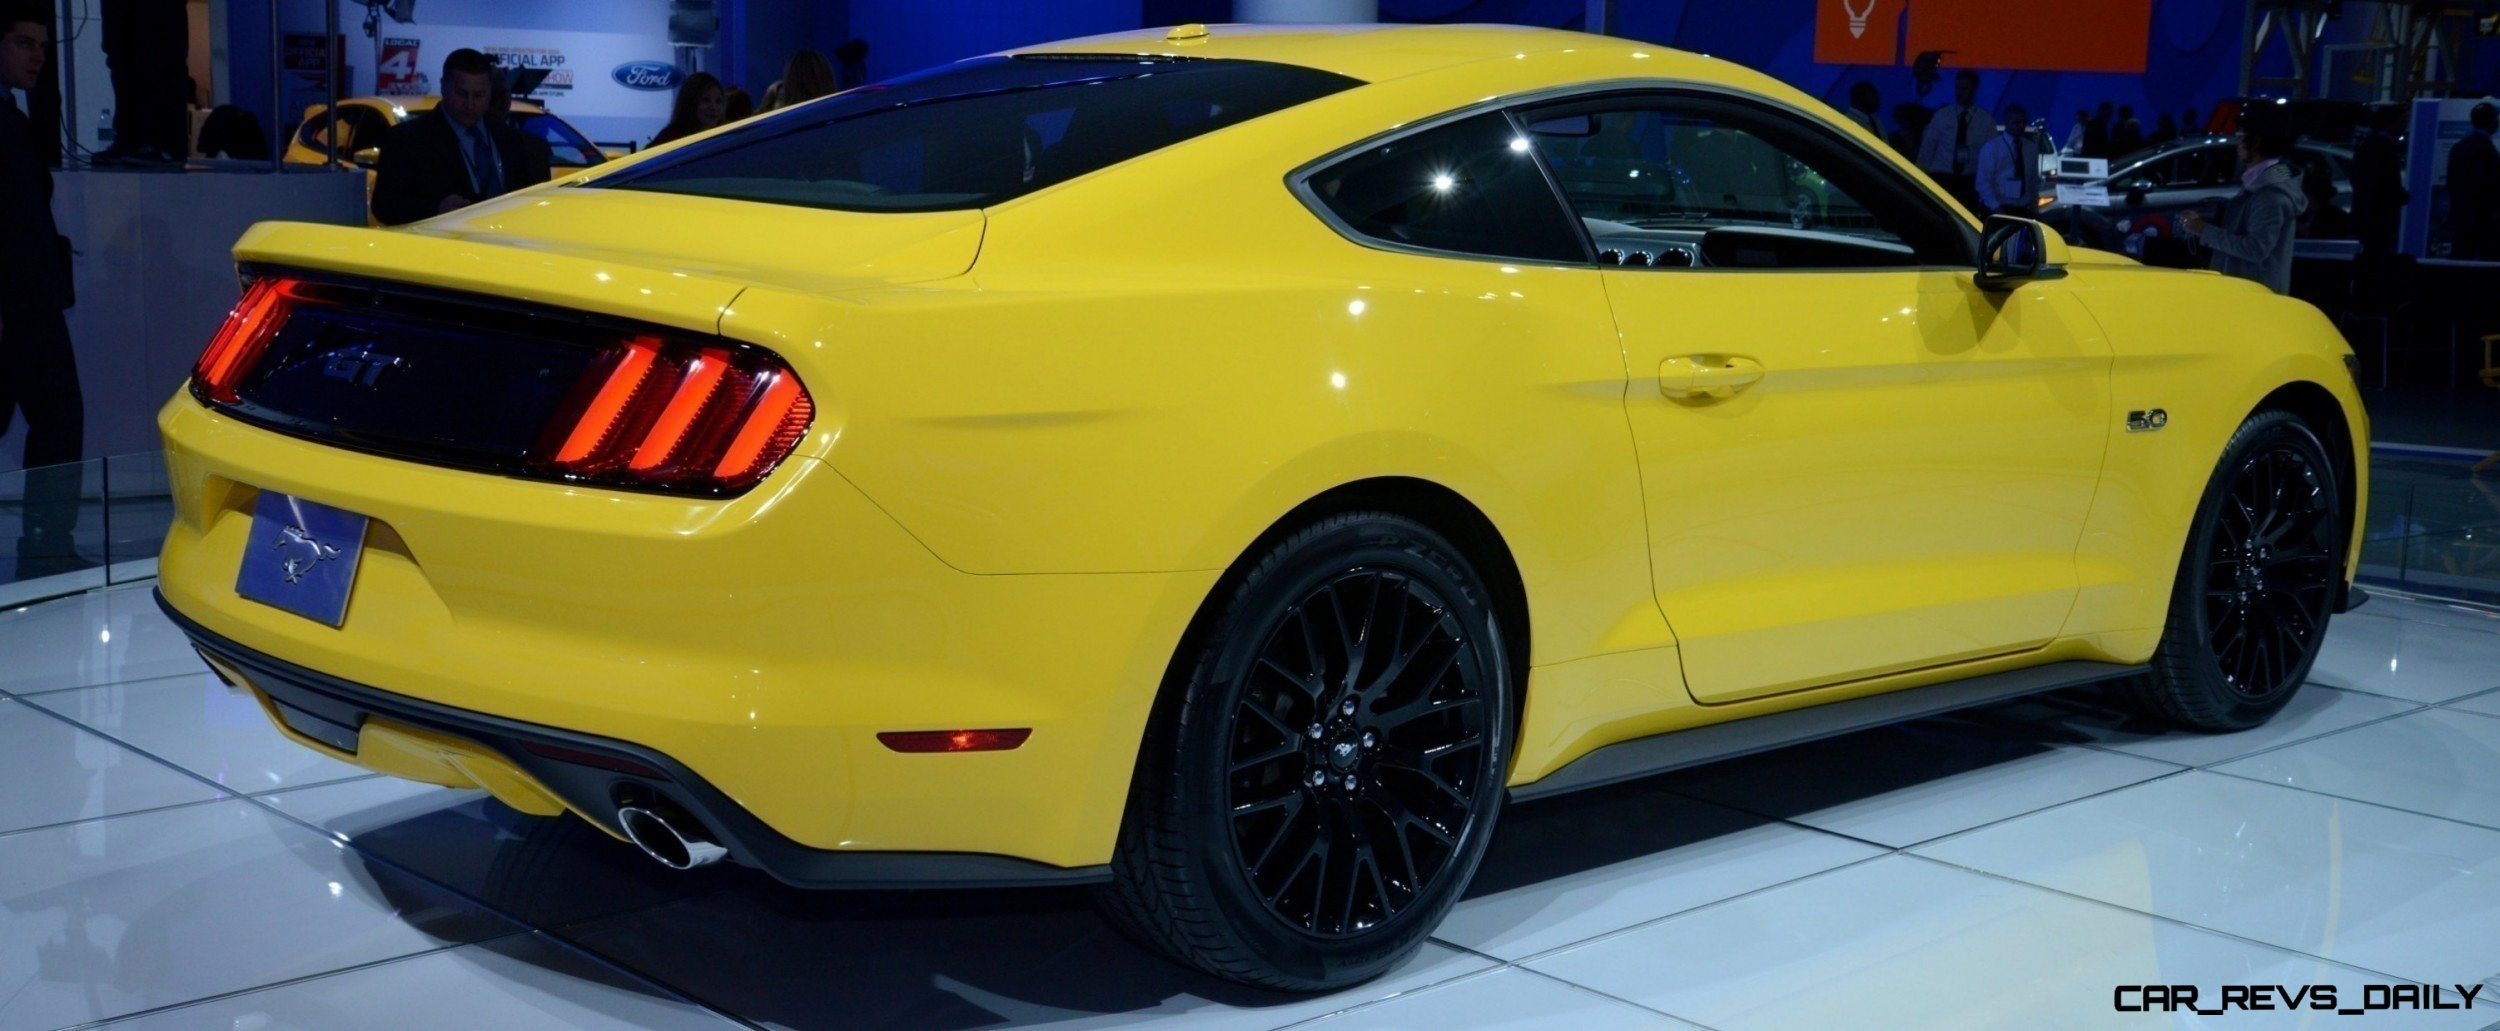 2015 Ford Mustang GT Mean Lean and Ready To Brawl in Latest Real Life Photos Yellow GT 16 photo